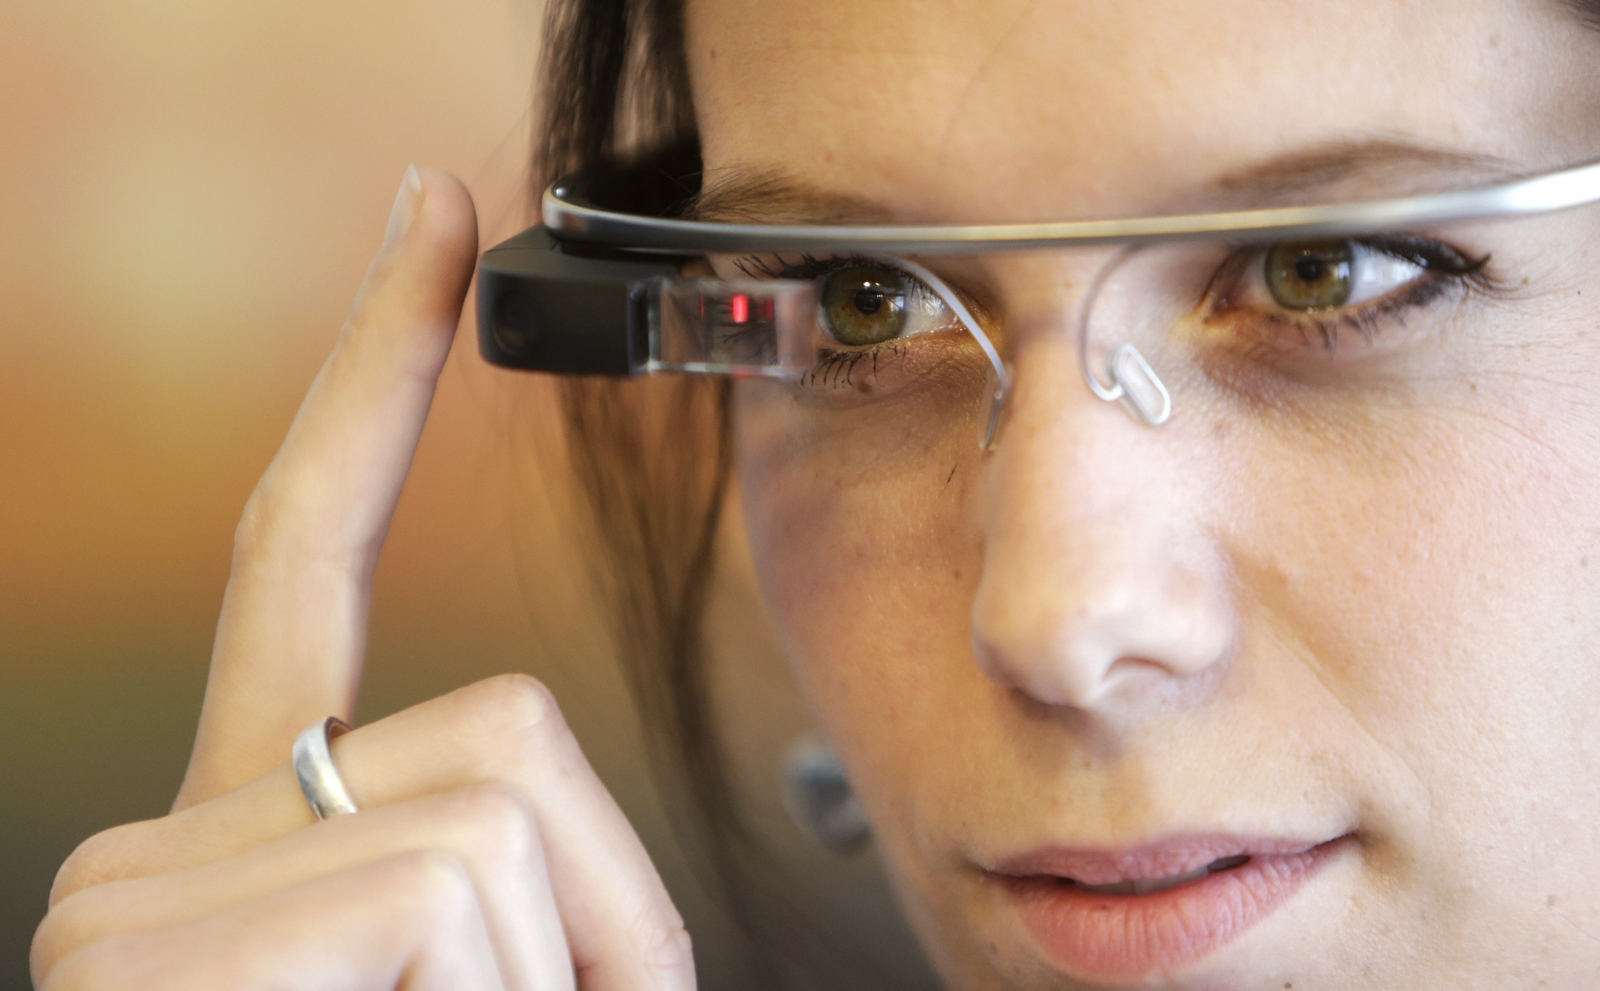 Don U0026 39 T Wear Google Glass  Device Causes Blind Spots By